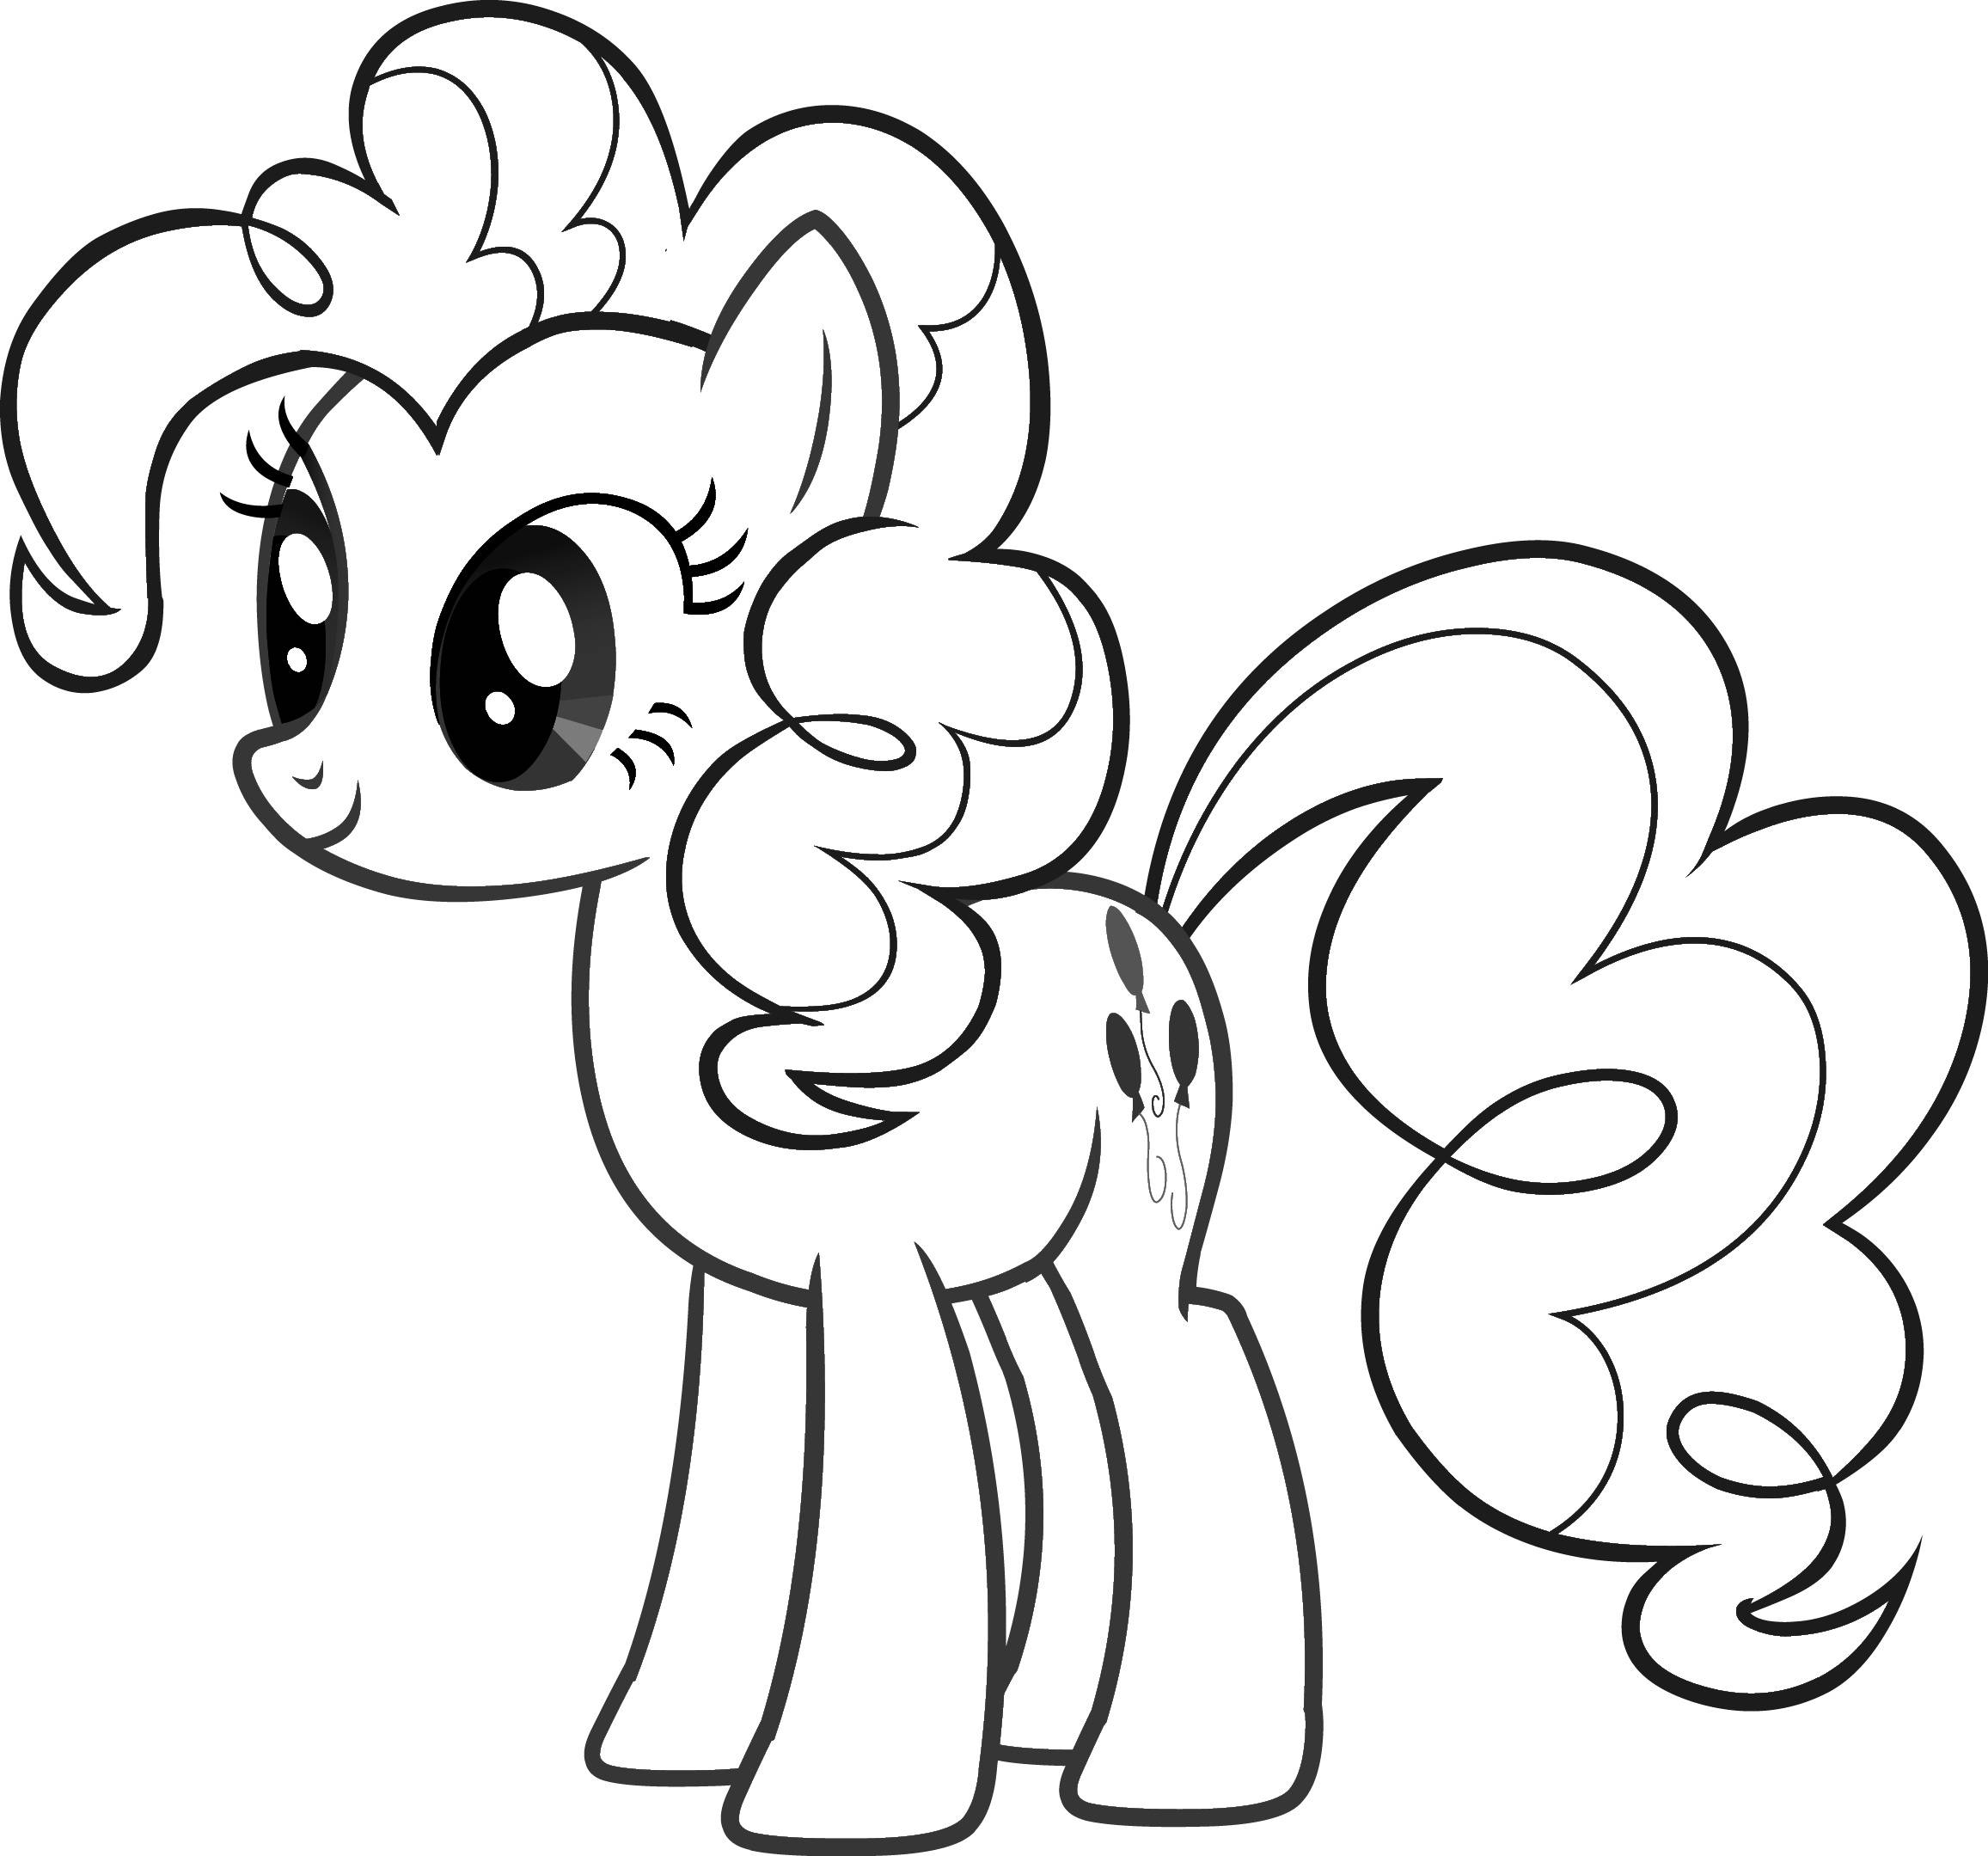 Free coloring pages yak - Mlp Coloring Pages To Print High Quality Coloring Pages